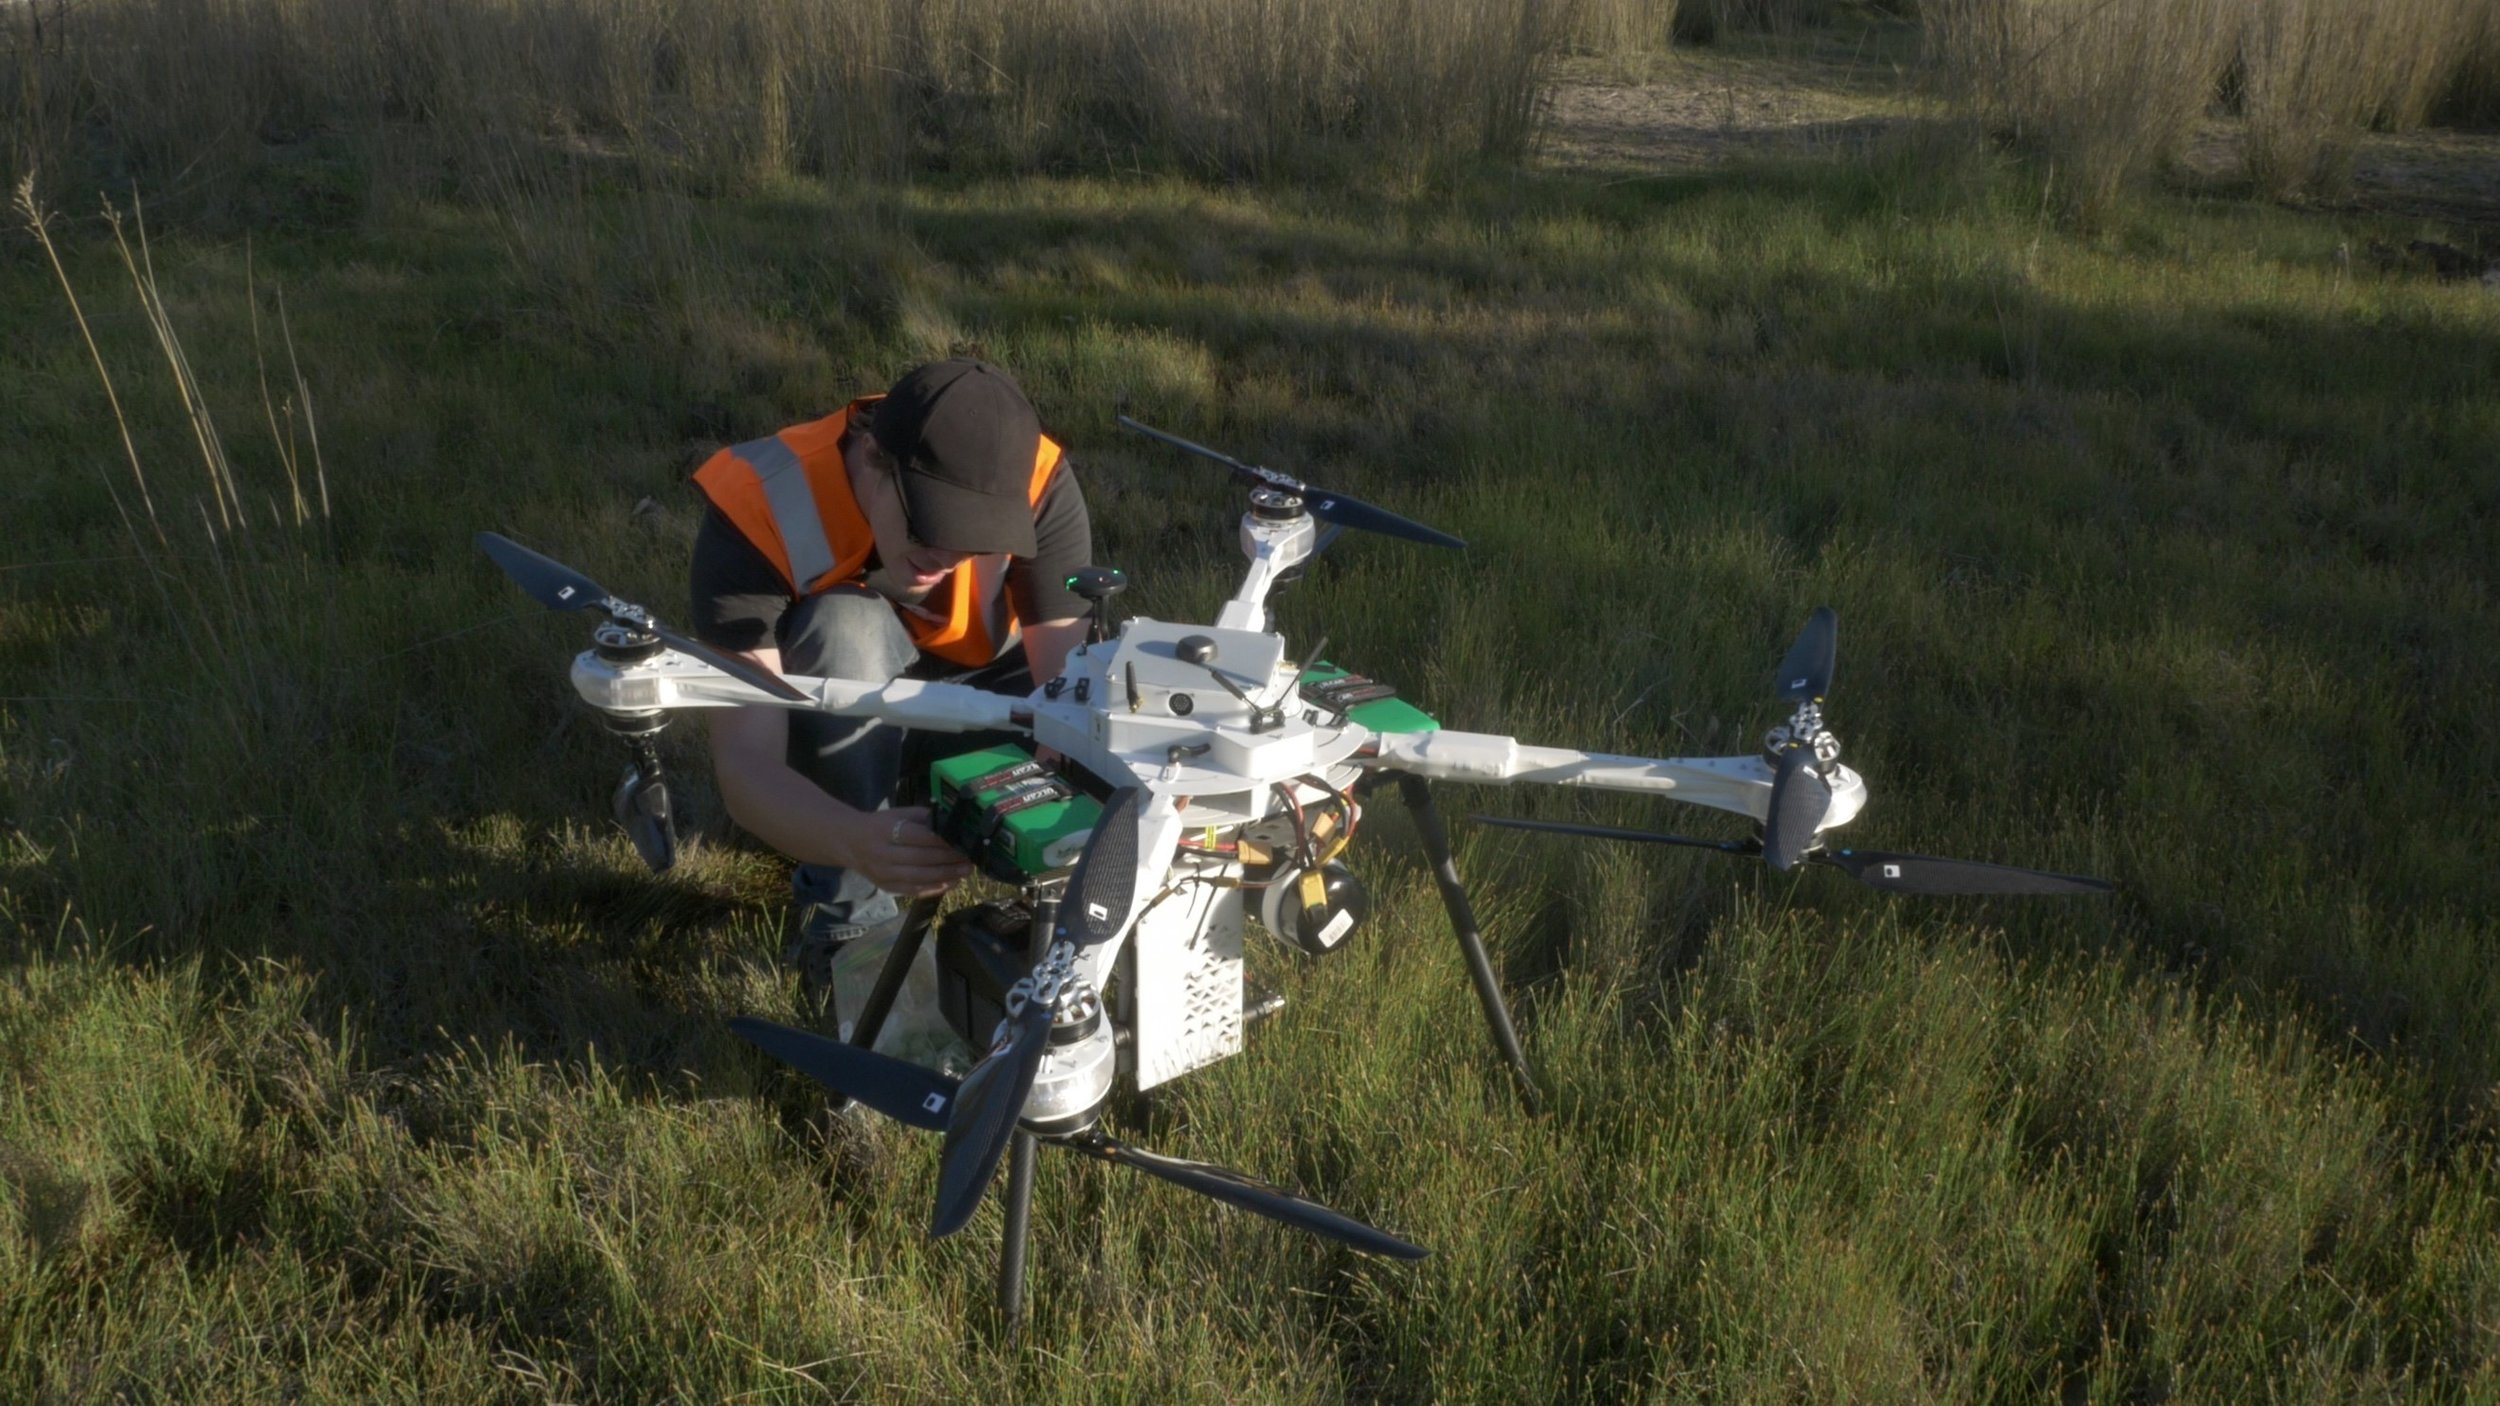 BCE engineer Spencer working on precision-planting drone in Myanmar